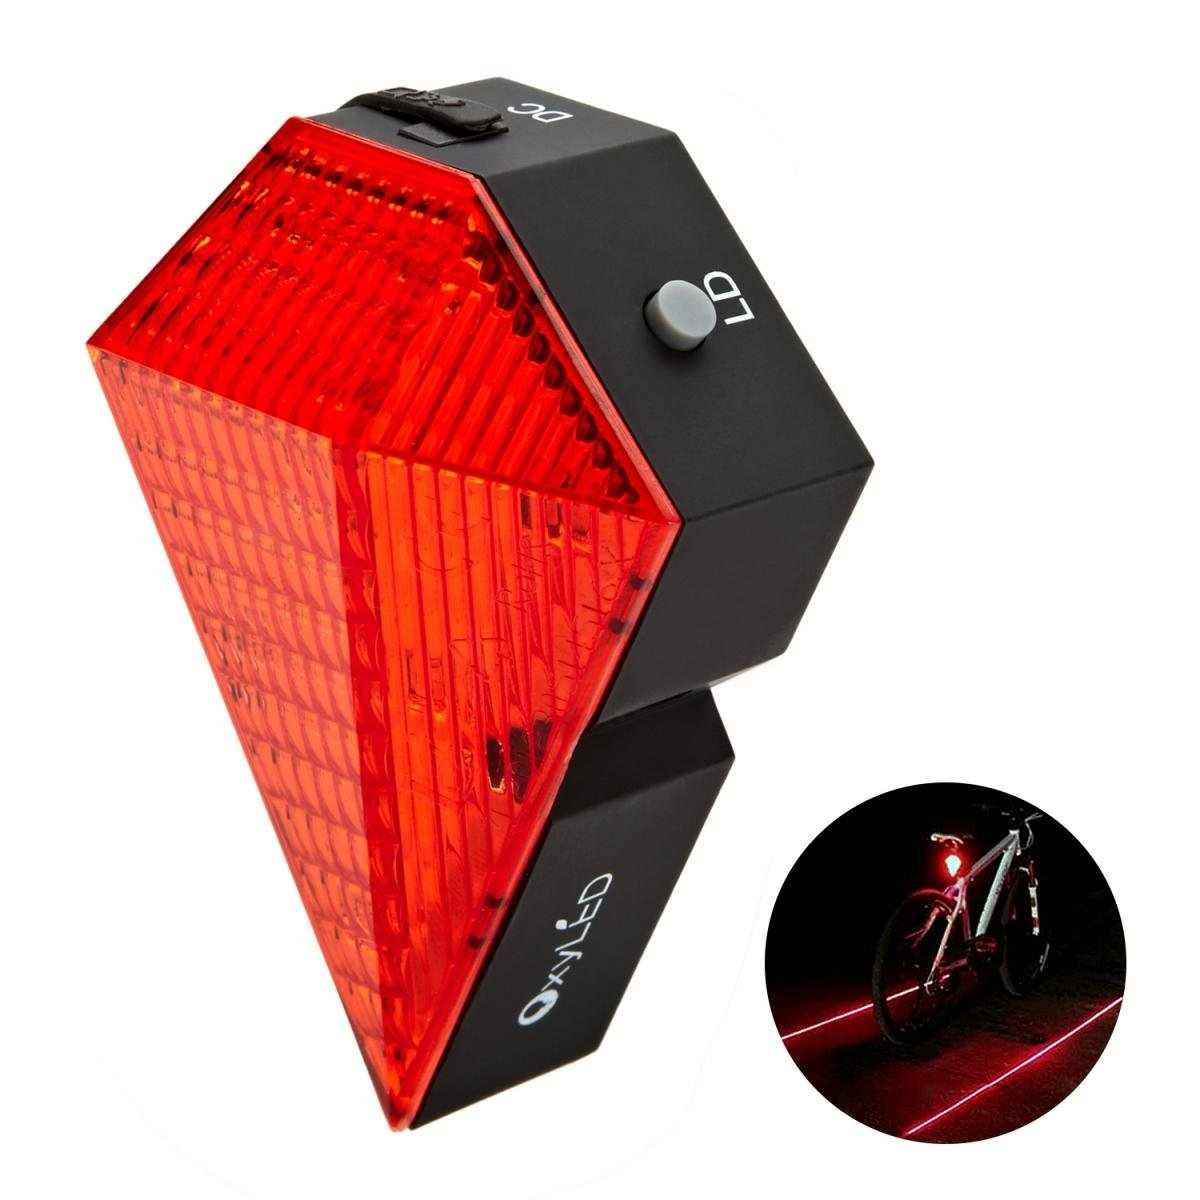 OxyLED Rechargeable Bike Bicycle Cycling Safety Zone Tail Light 1.jpg